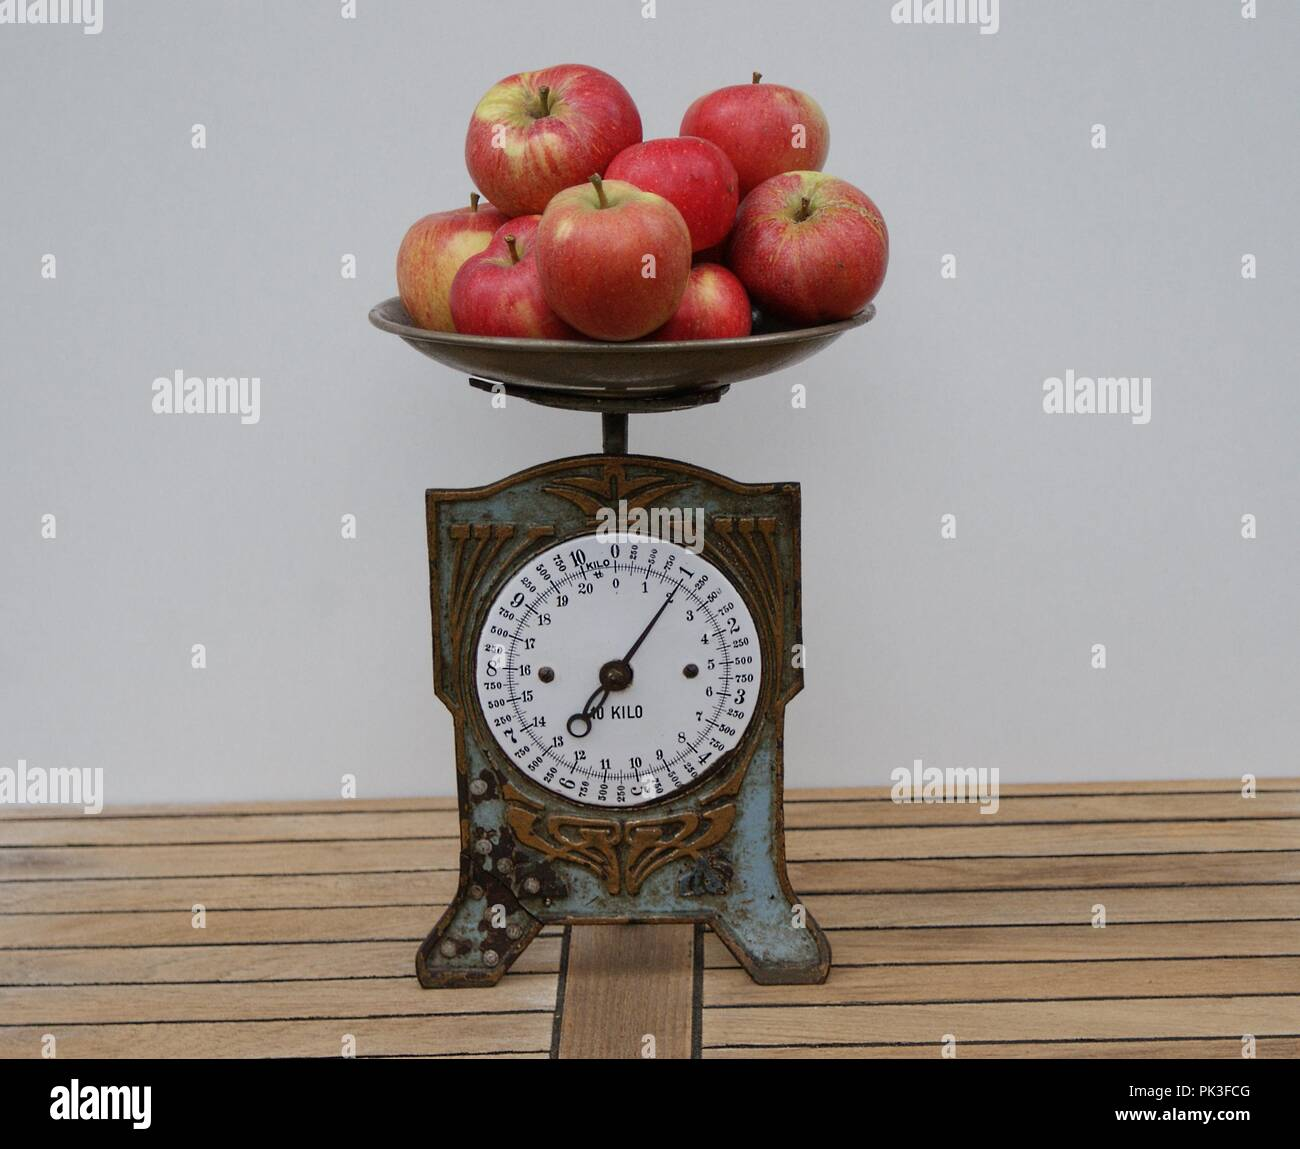 Closeup of a nostalgic kitchen scale with apples on the scales pan - Stock Image